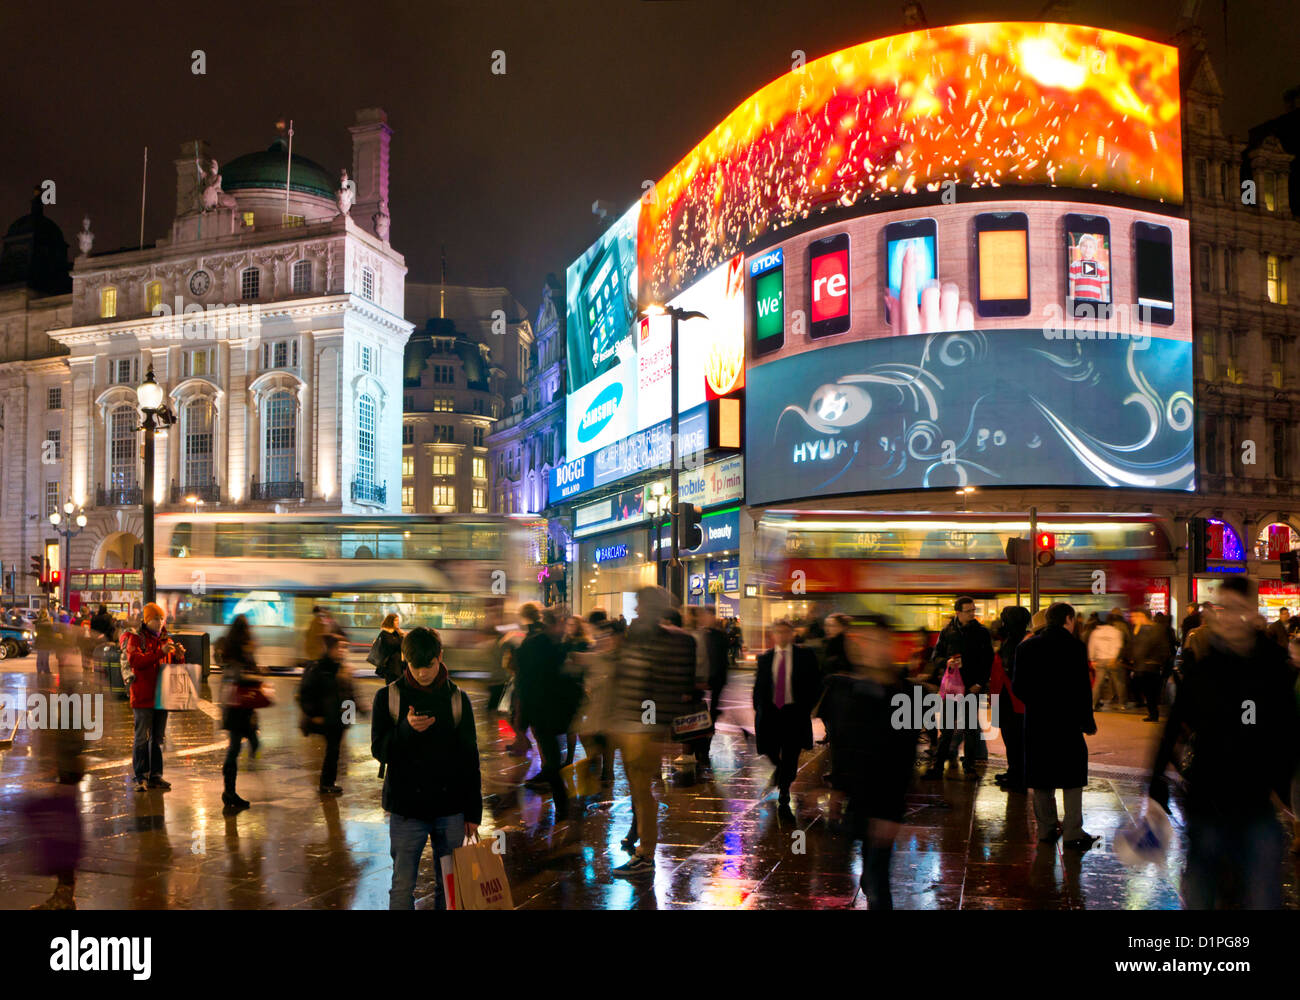 People and London buses on a Busy night in Piccadilly Circus Central London England GB UK EU Europe - Stock Image